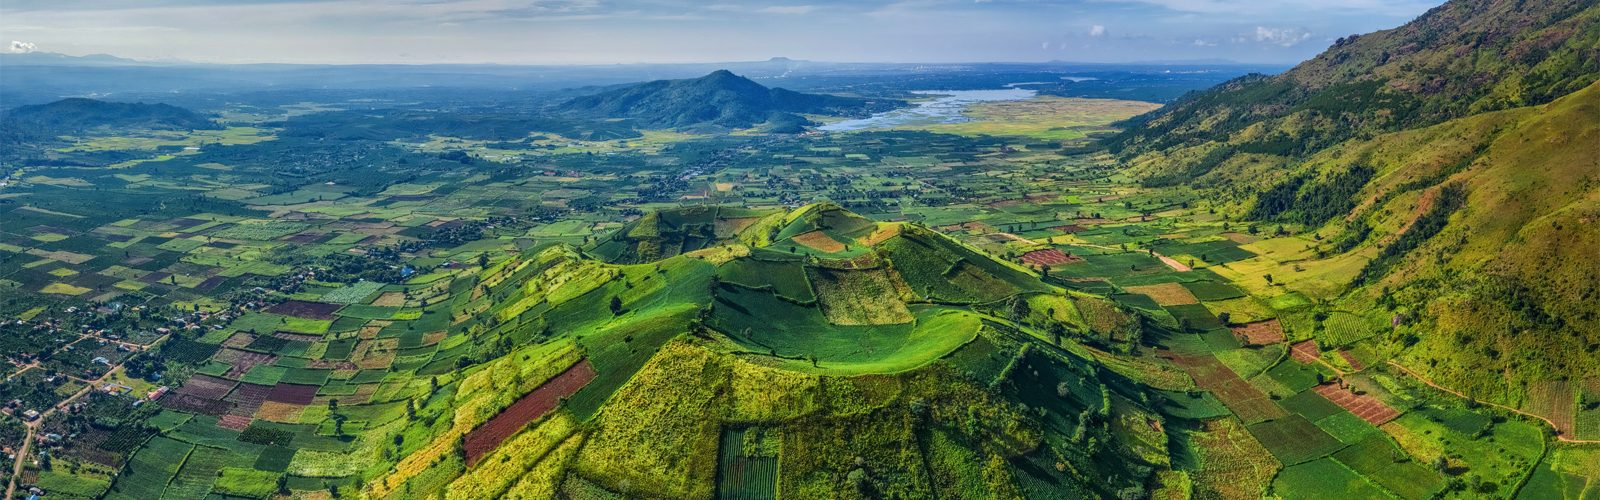 Luxury Vietnam Holiday Packages The Unexplored Places Of Vietnam You Need To Visit HEADER